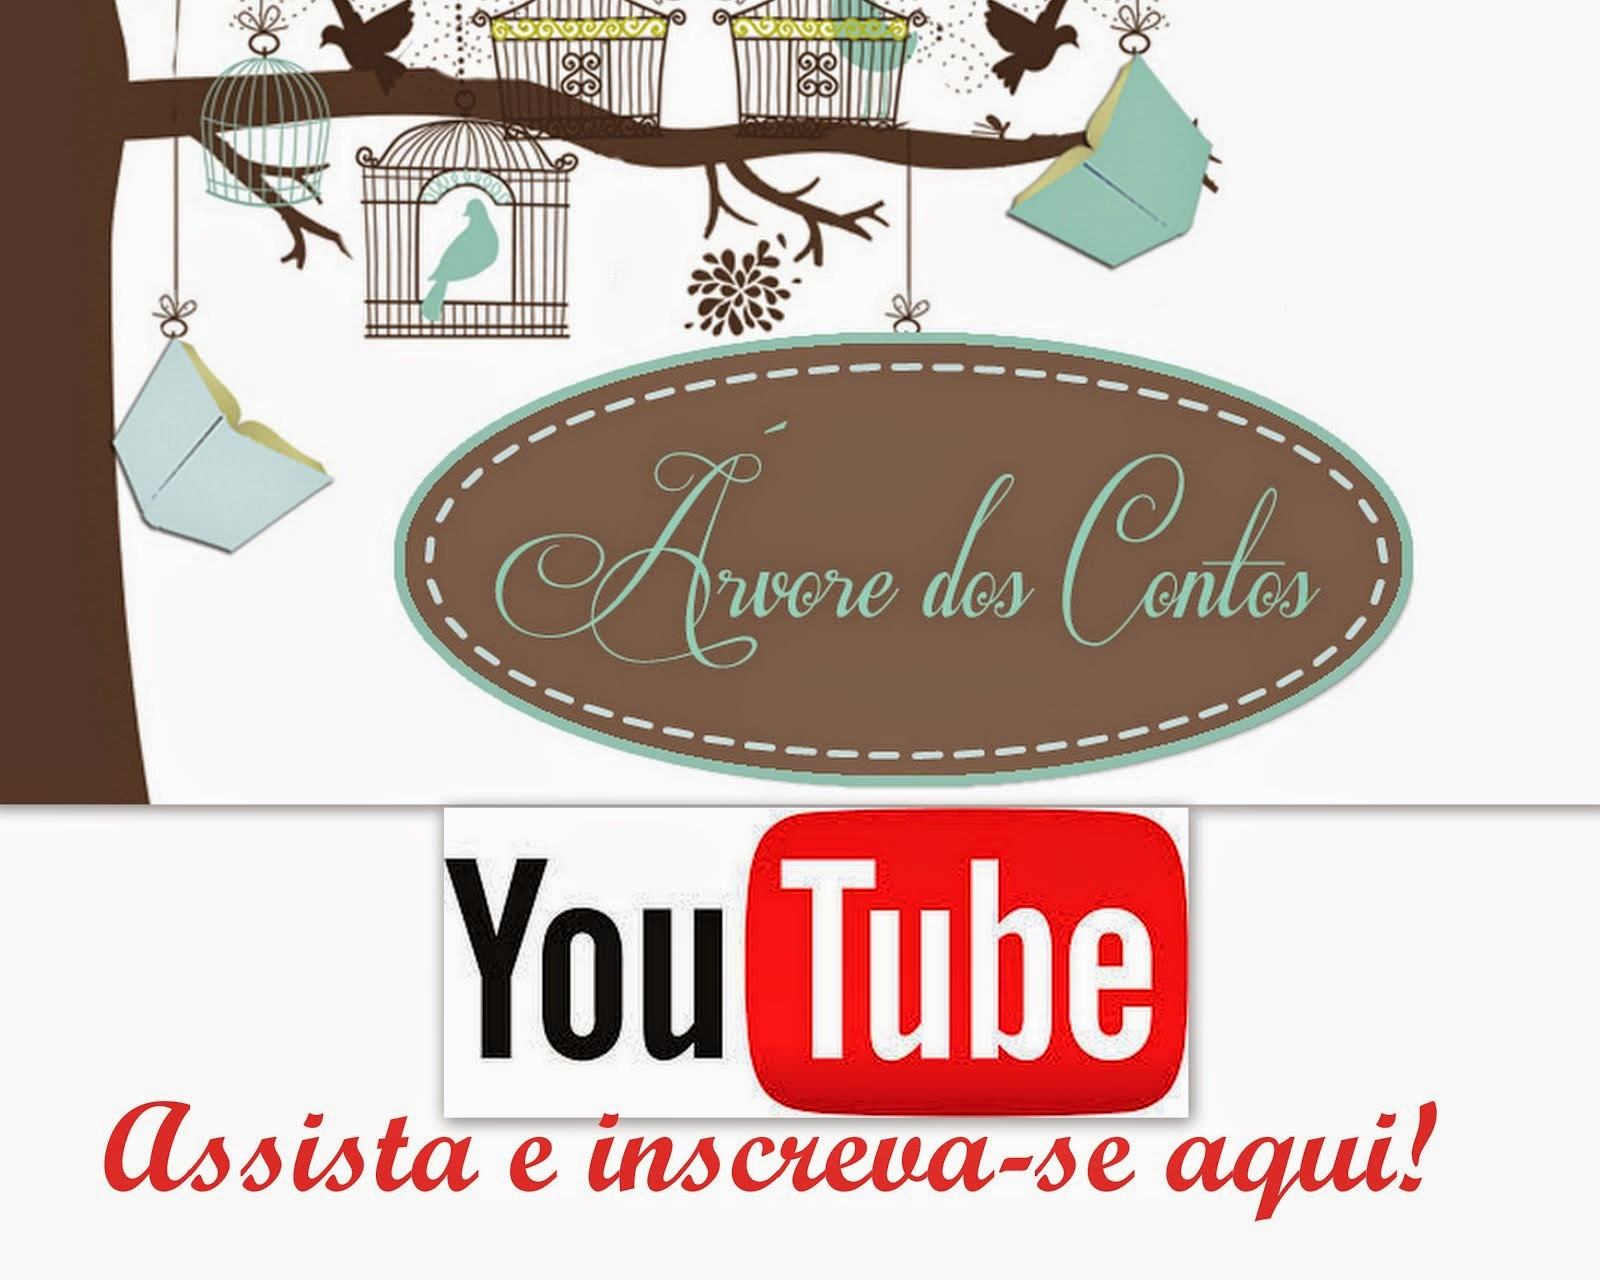 Canal do Blog!